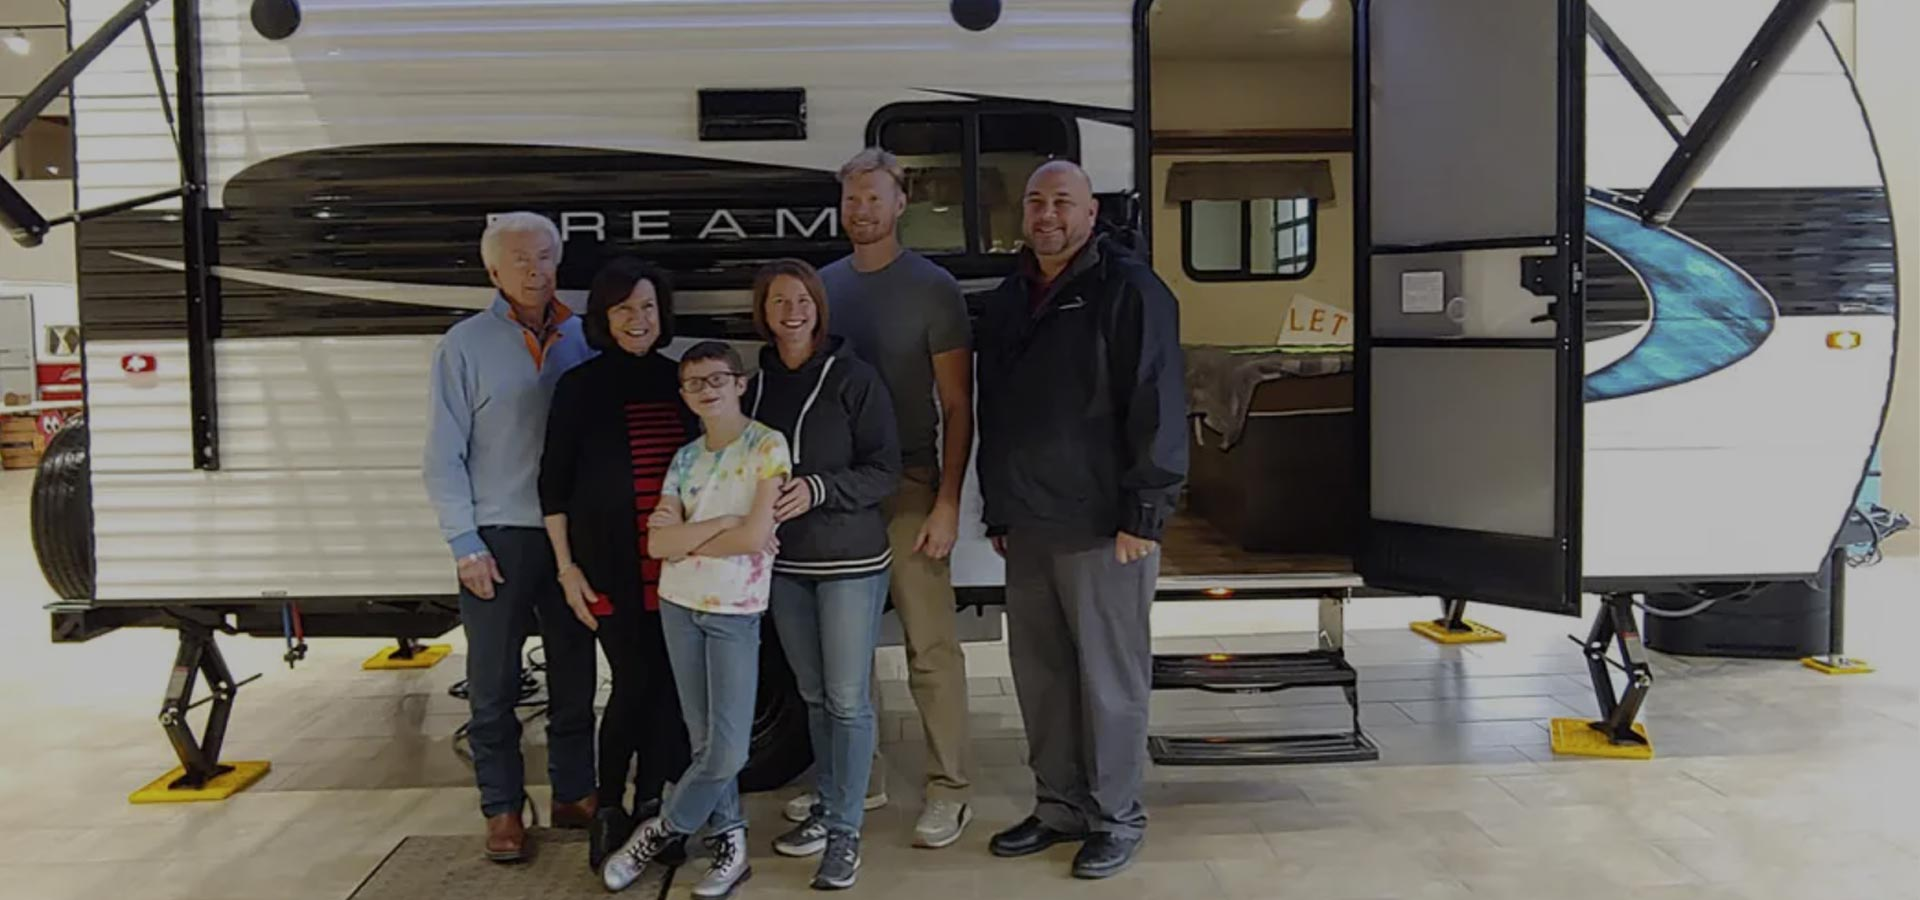 Mount Comfort RV Indy Grants Wish For 9-Year-Old